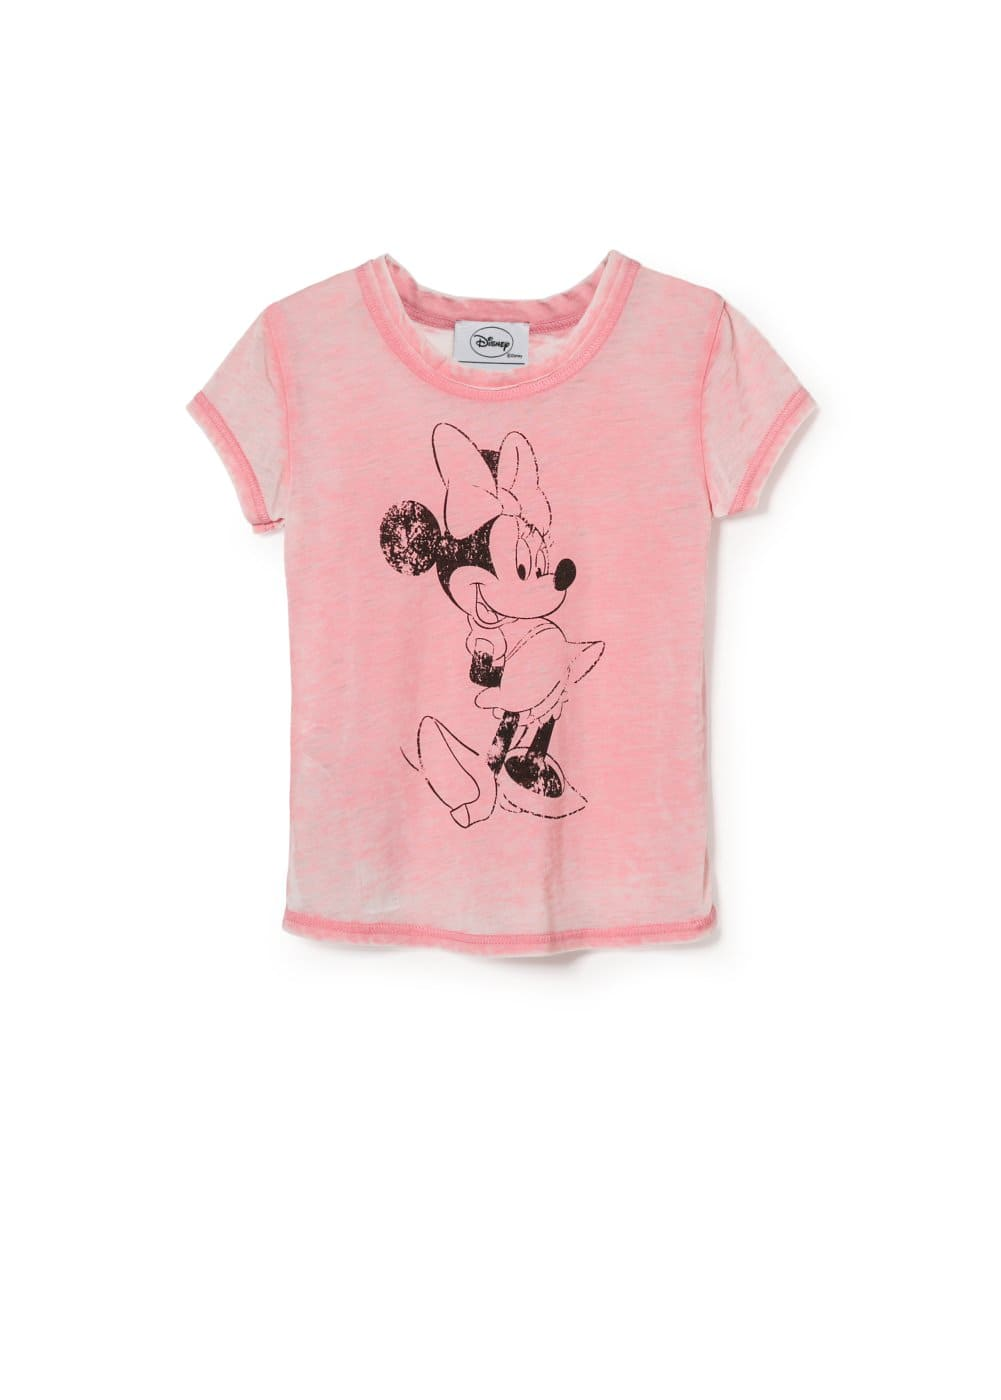 Camiseta devoré Disney